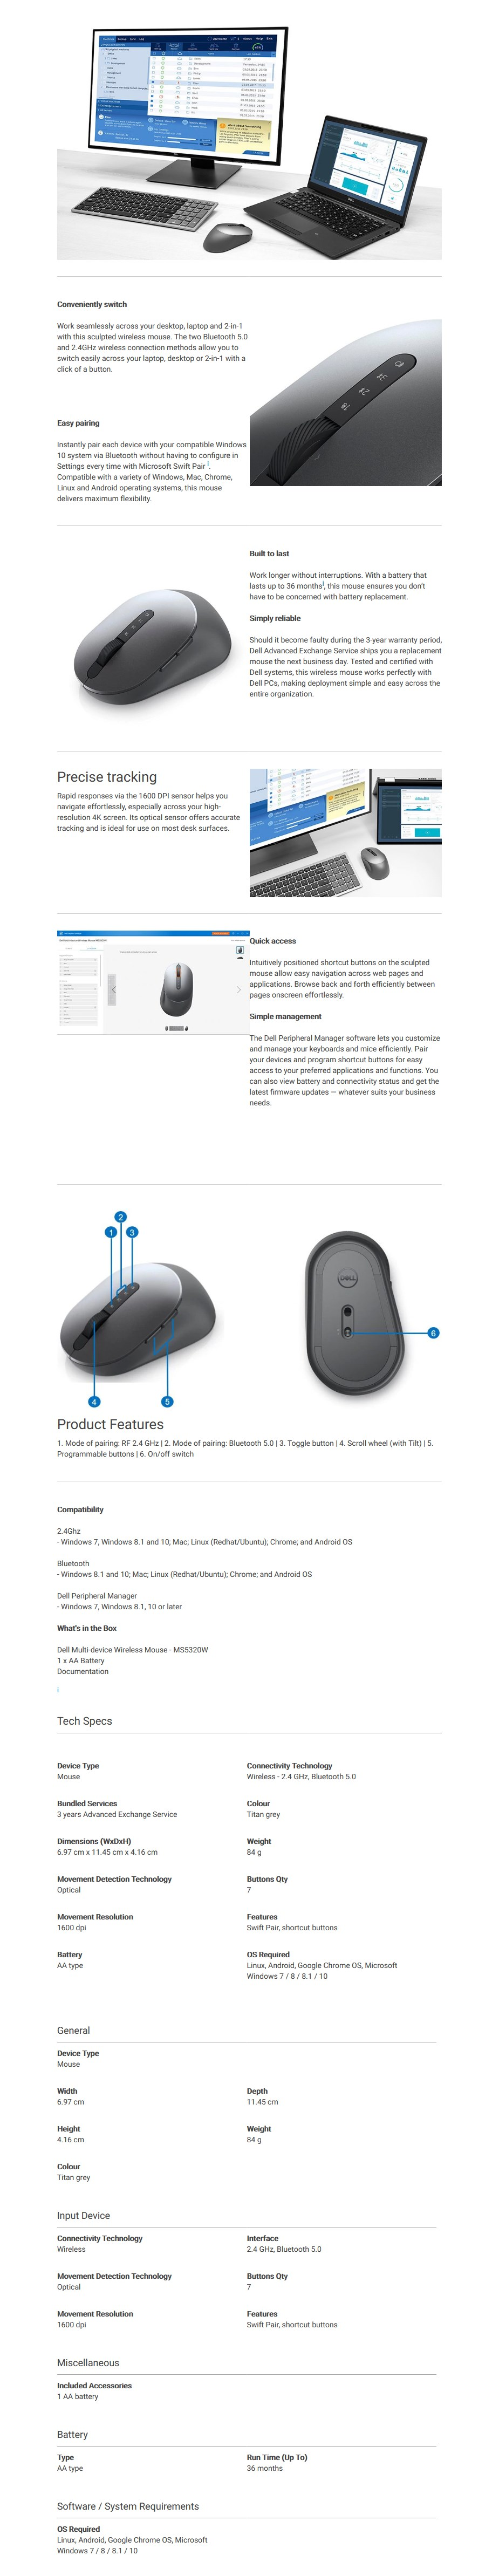 Dell MS5320W Multi-Device Wireless Mouse - Overview 1